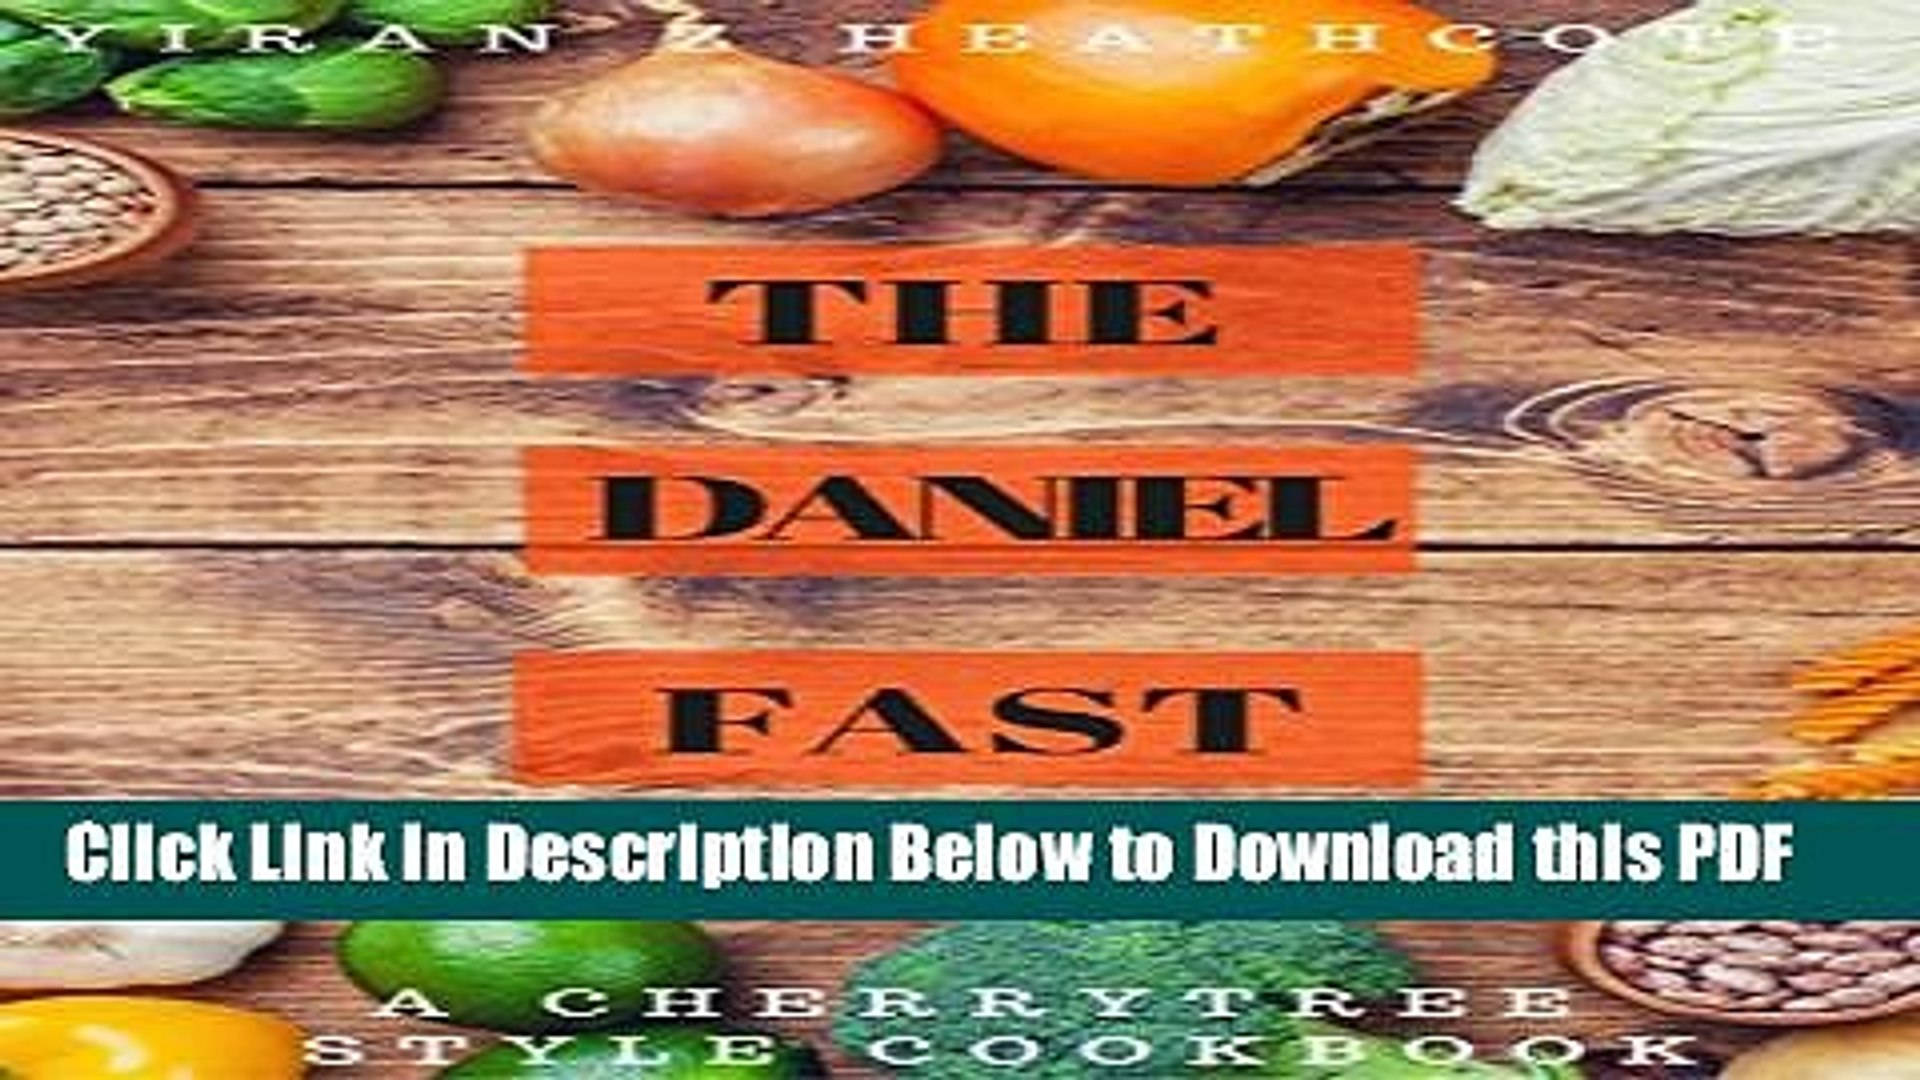 [PDF] The Daniel Fast: A CherryTree Style Cookbook(daniel fast cookbook,daniel fasting,daniel fast